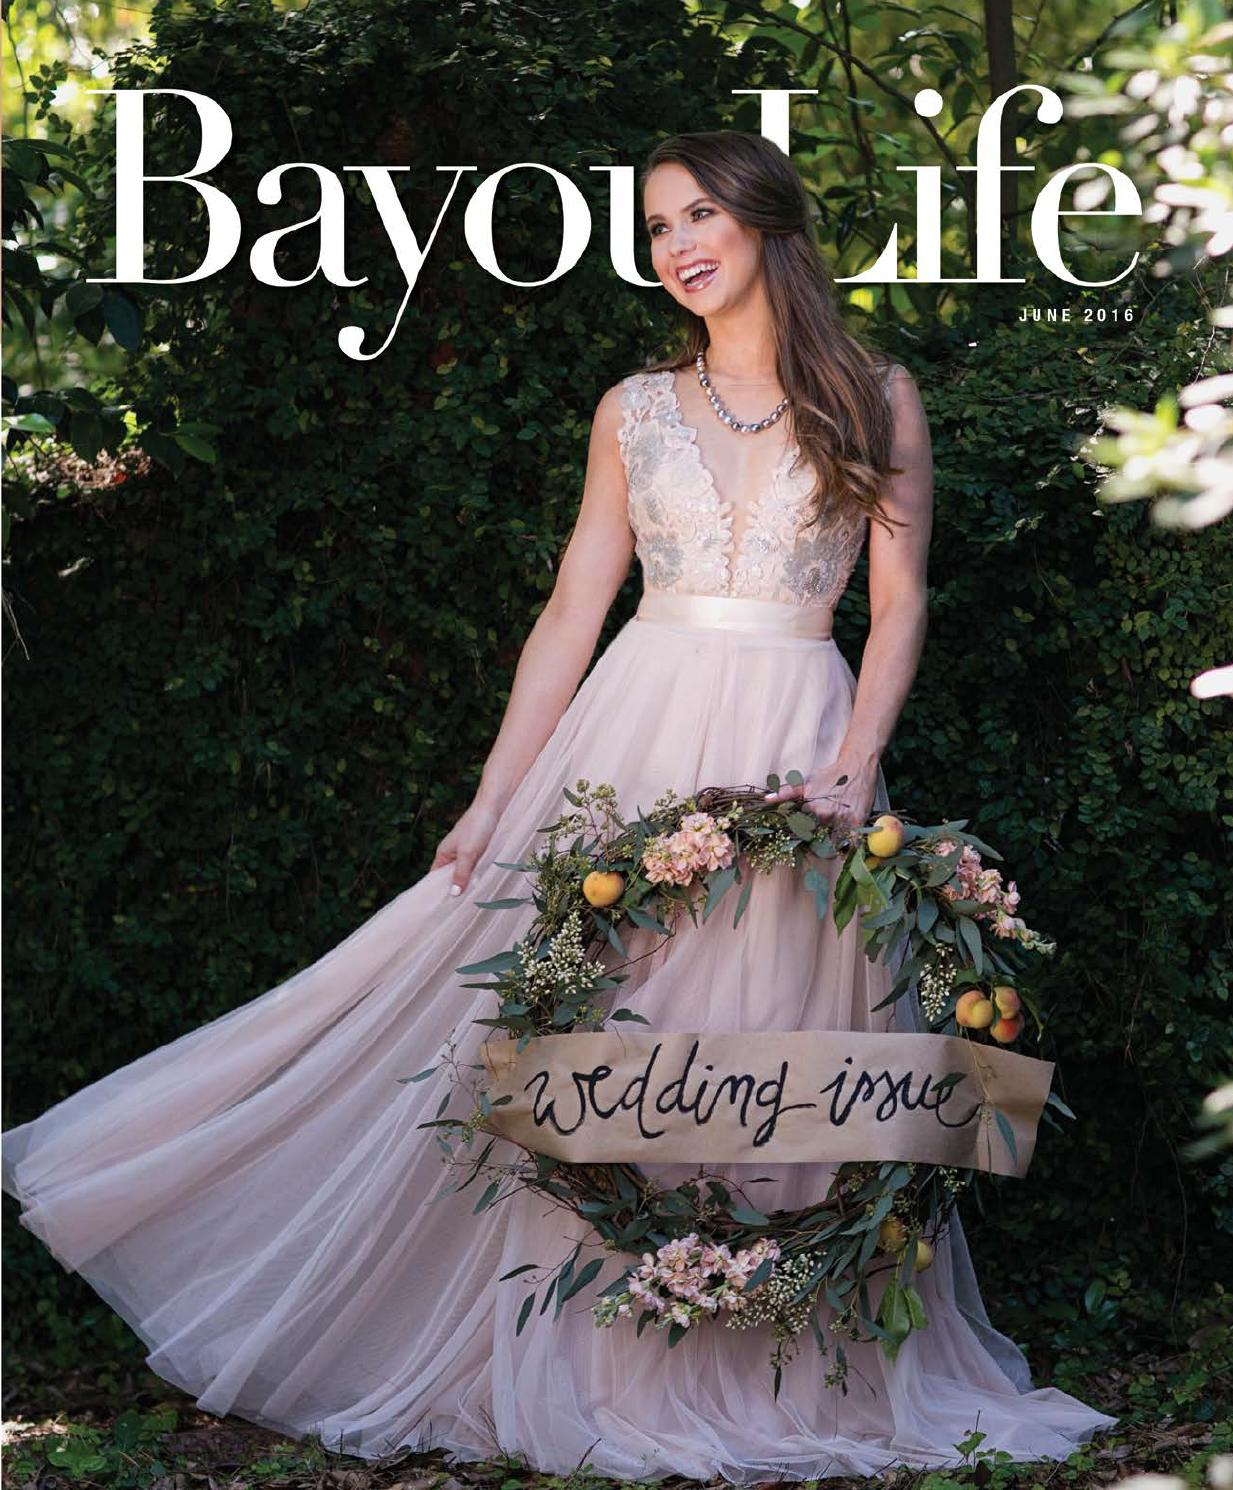 Bayoulife Magazine June 2016 By Bayoulife Magazine Issuu